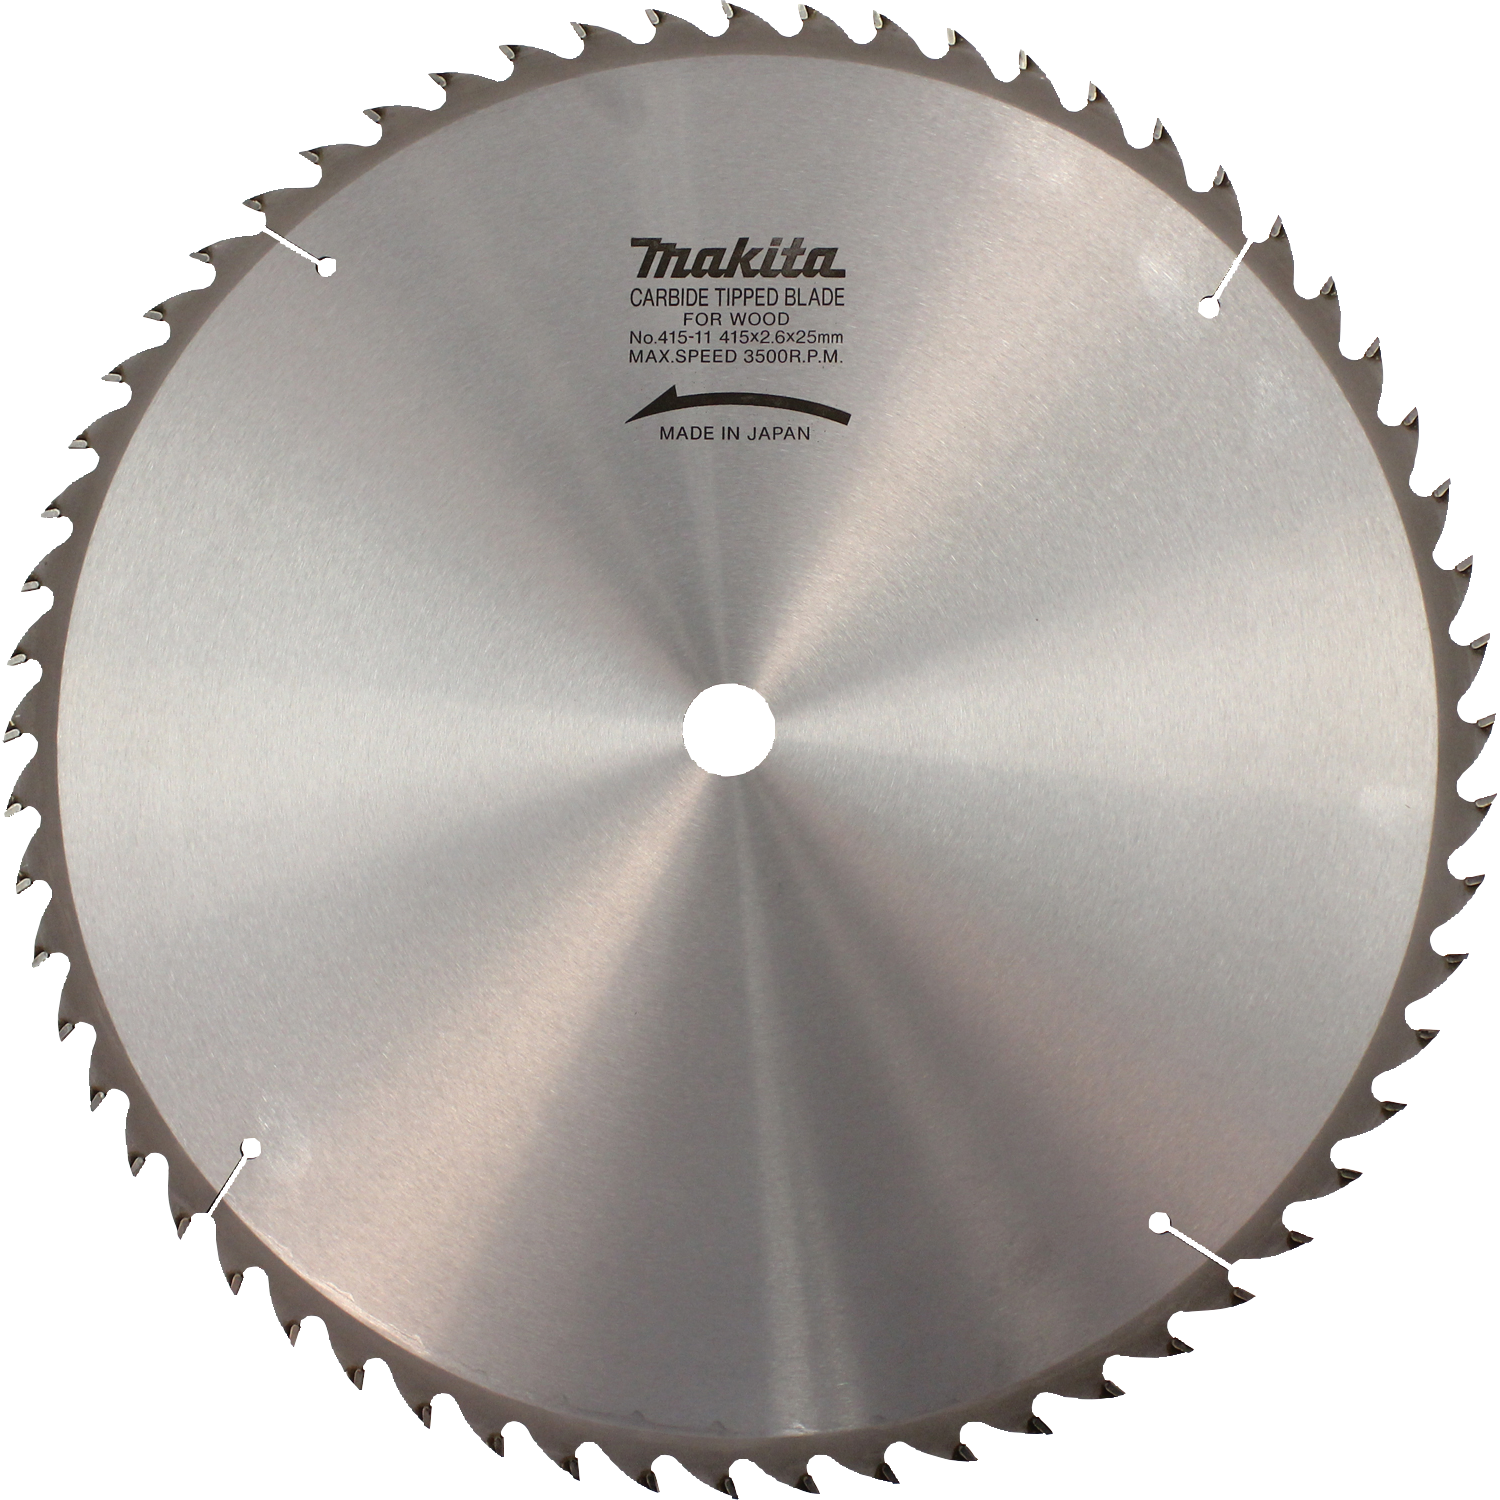 Circular saw blade png. Makita usa product details